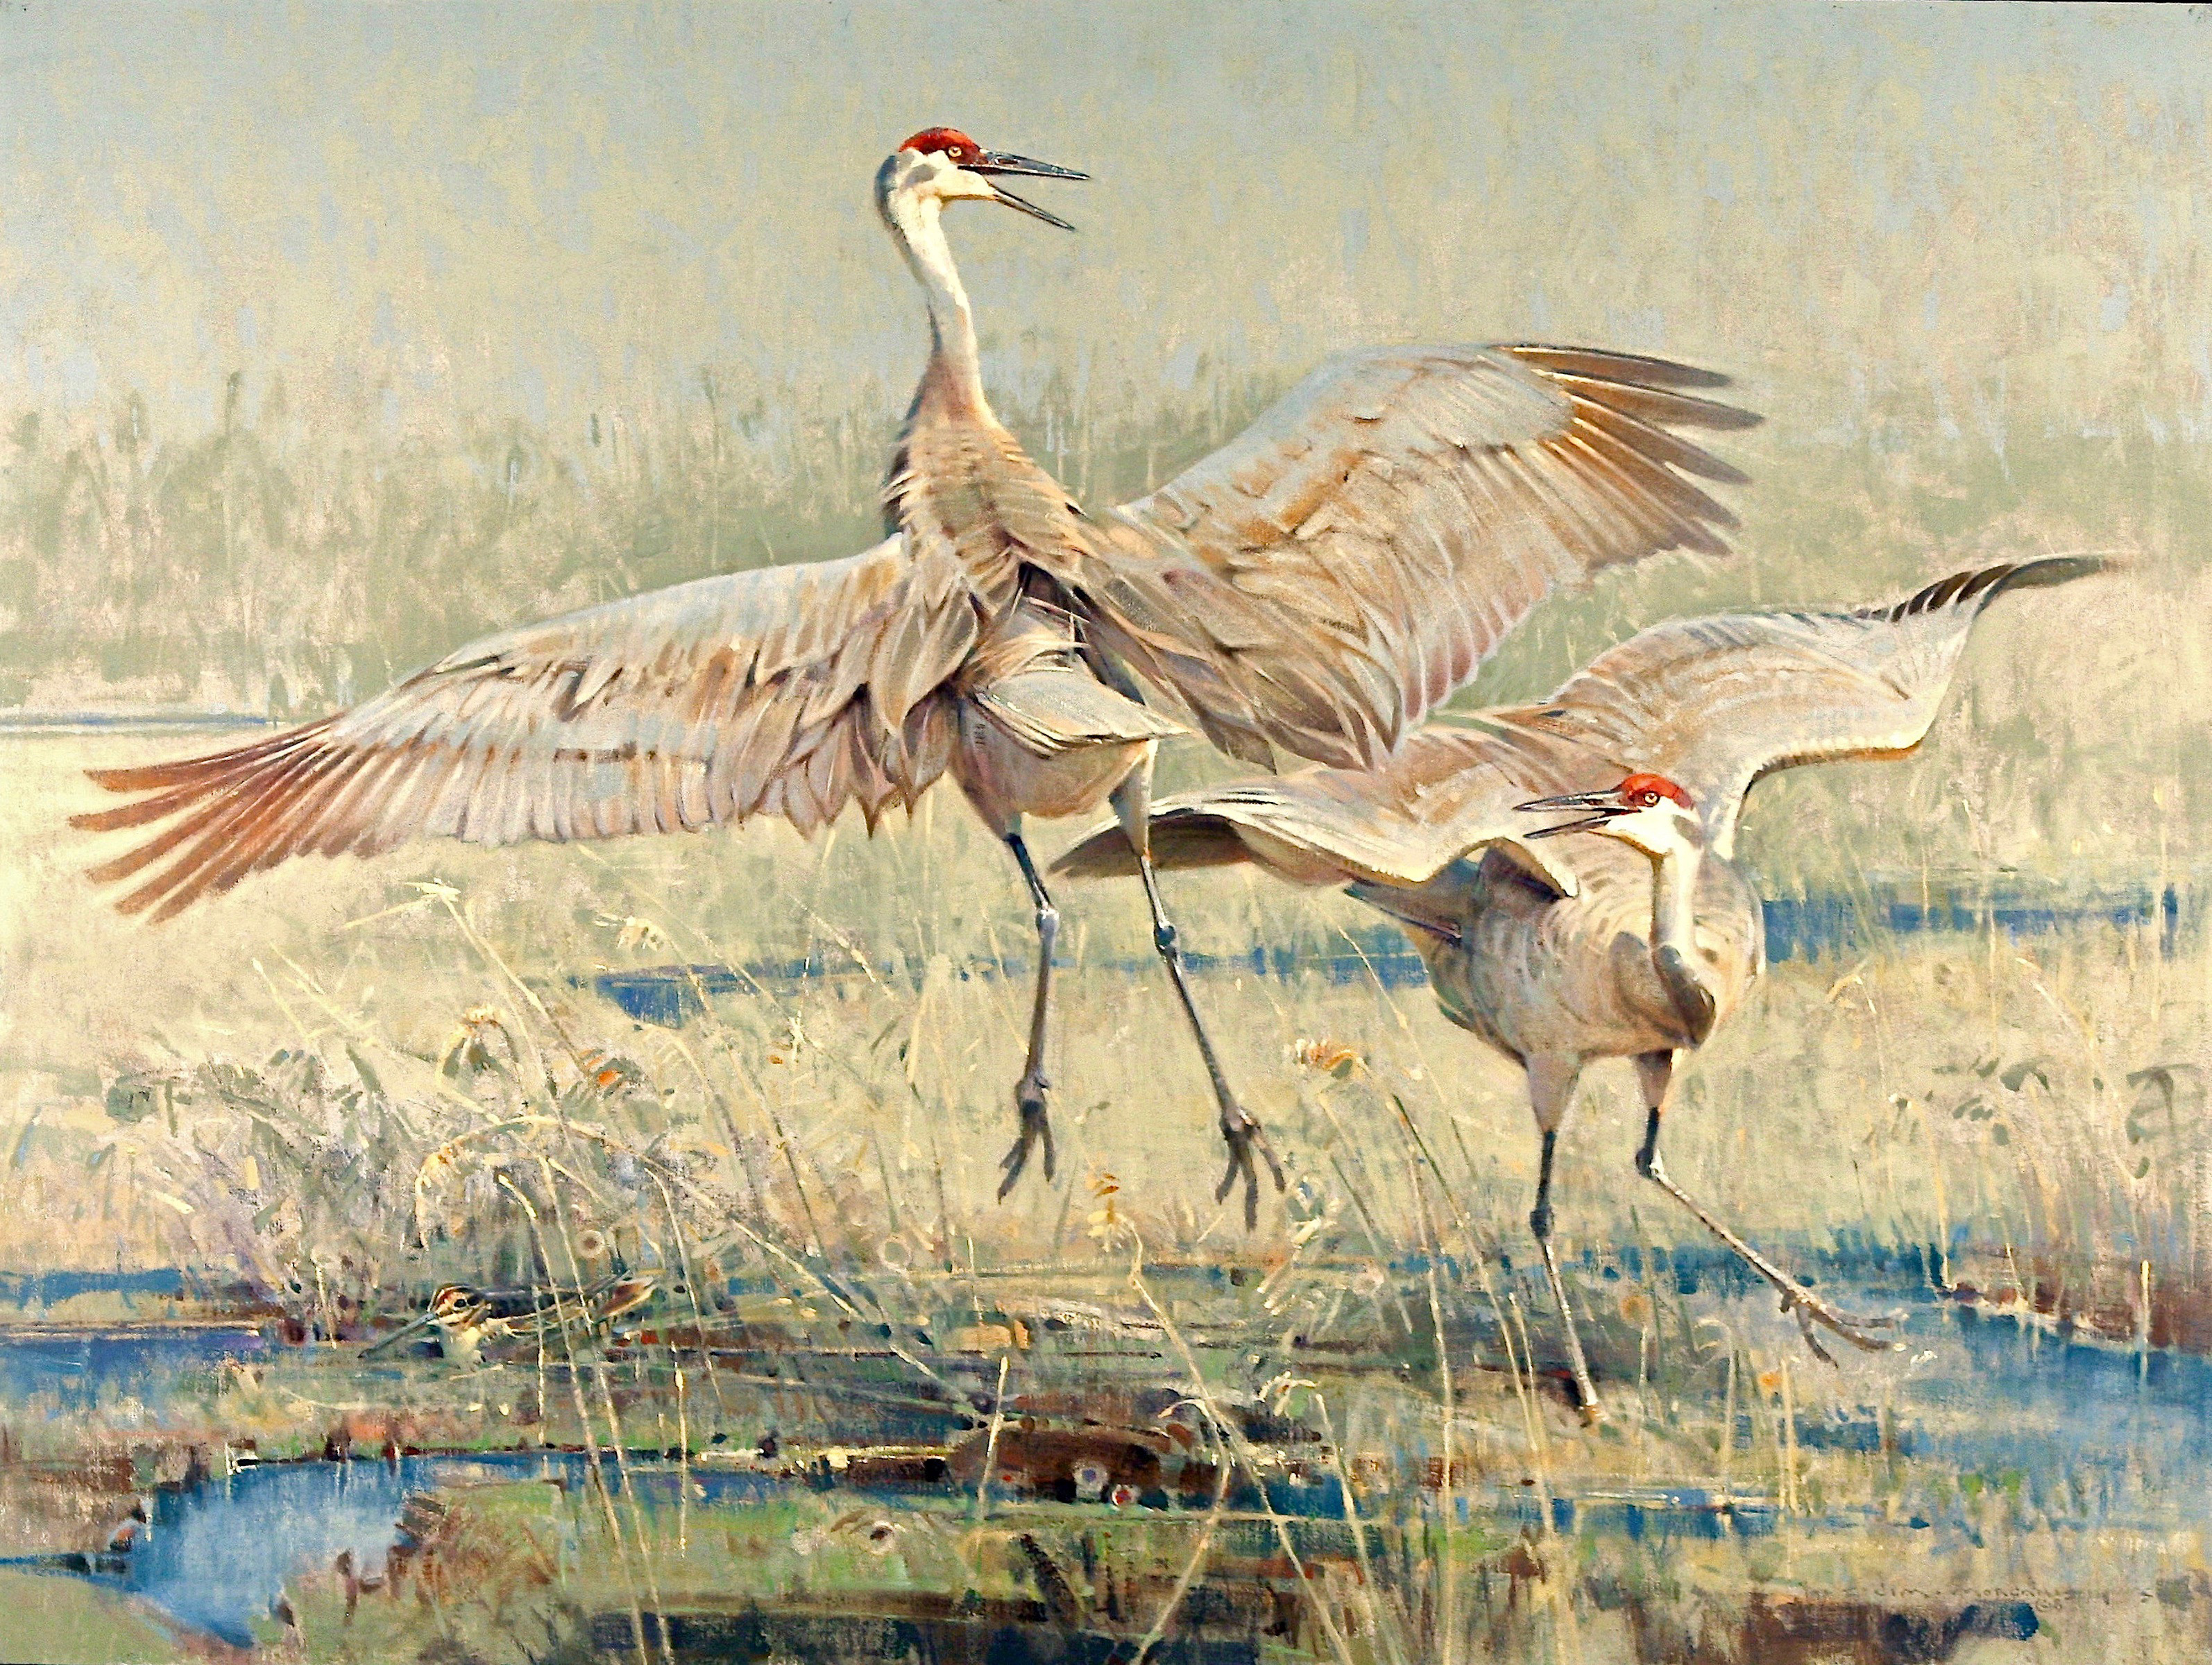 Courting Sandhill Cranes and Concerned